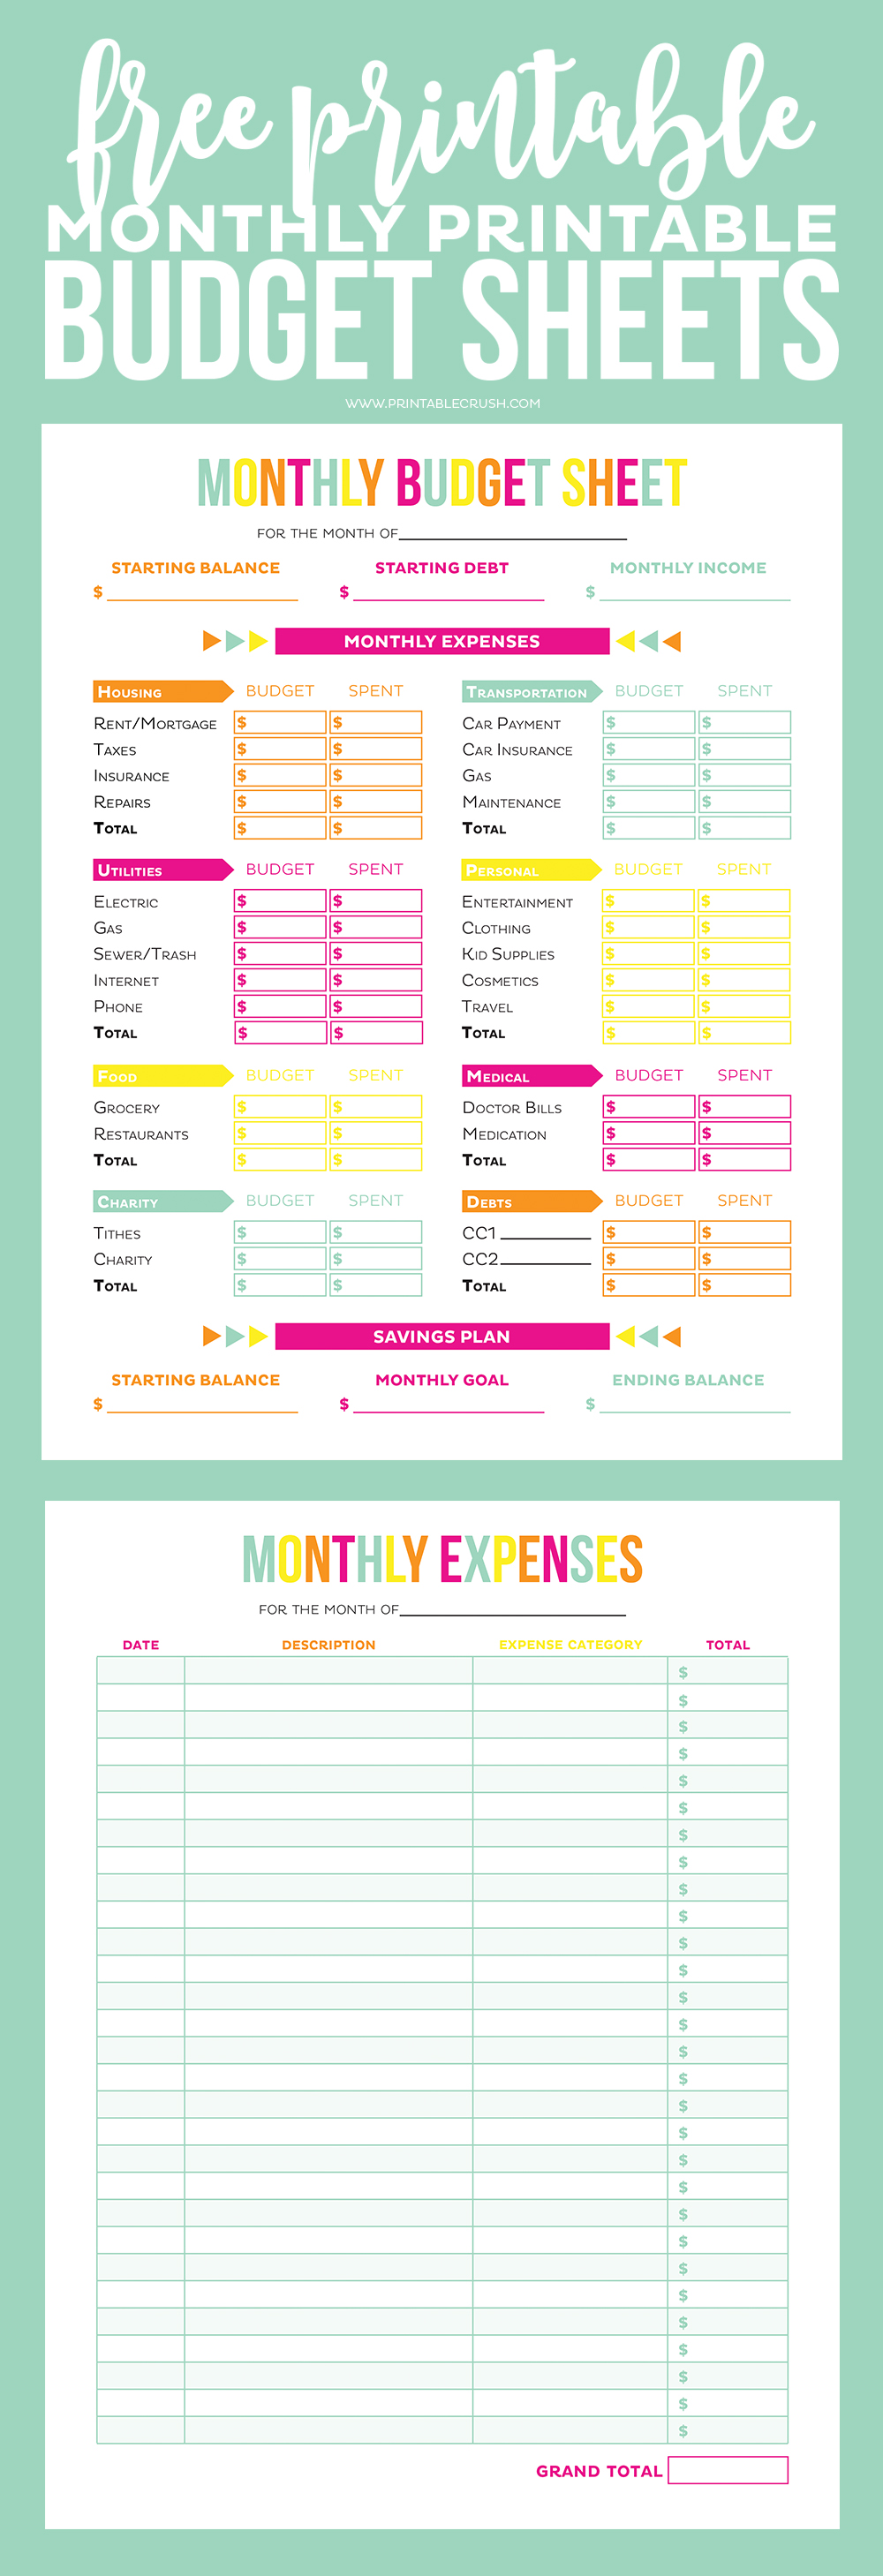 Budget sheet and expense sheet against teal background